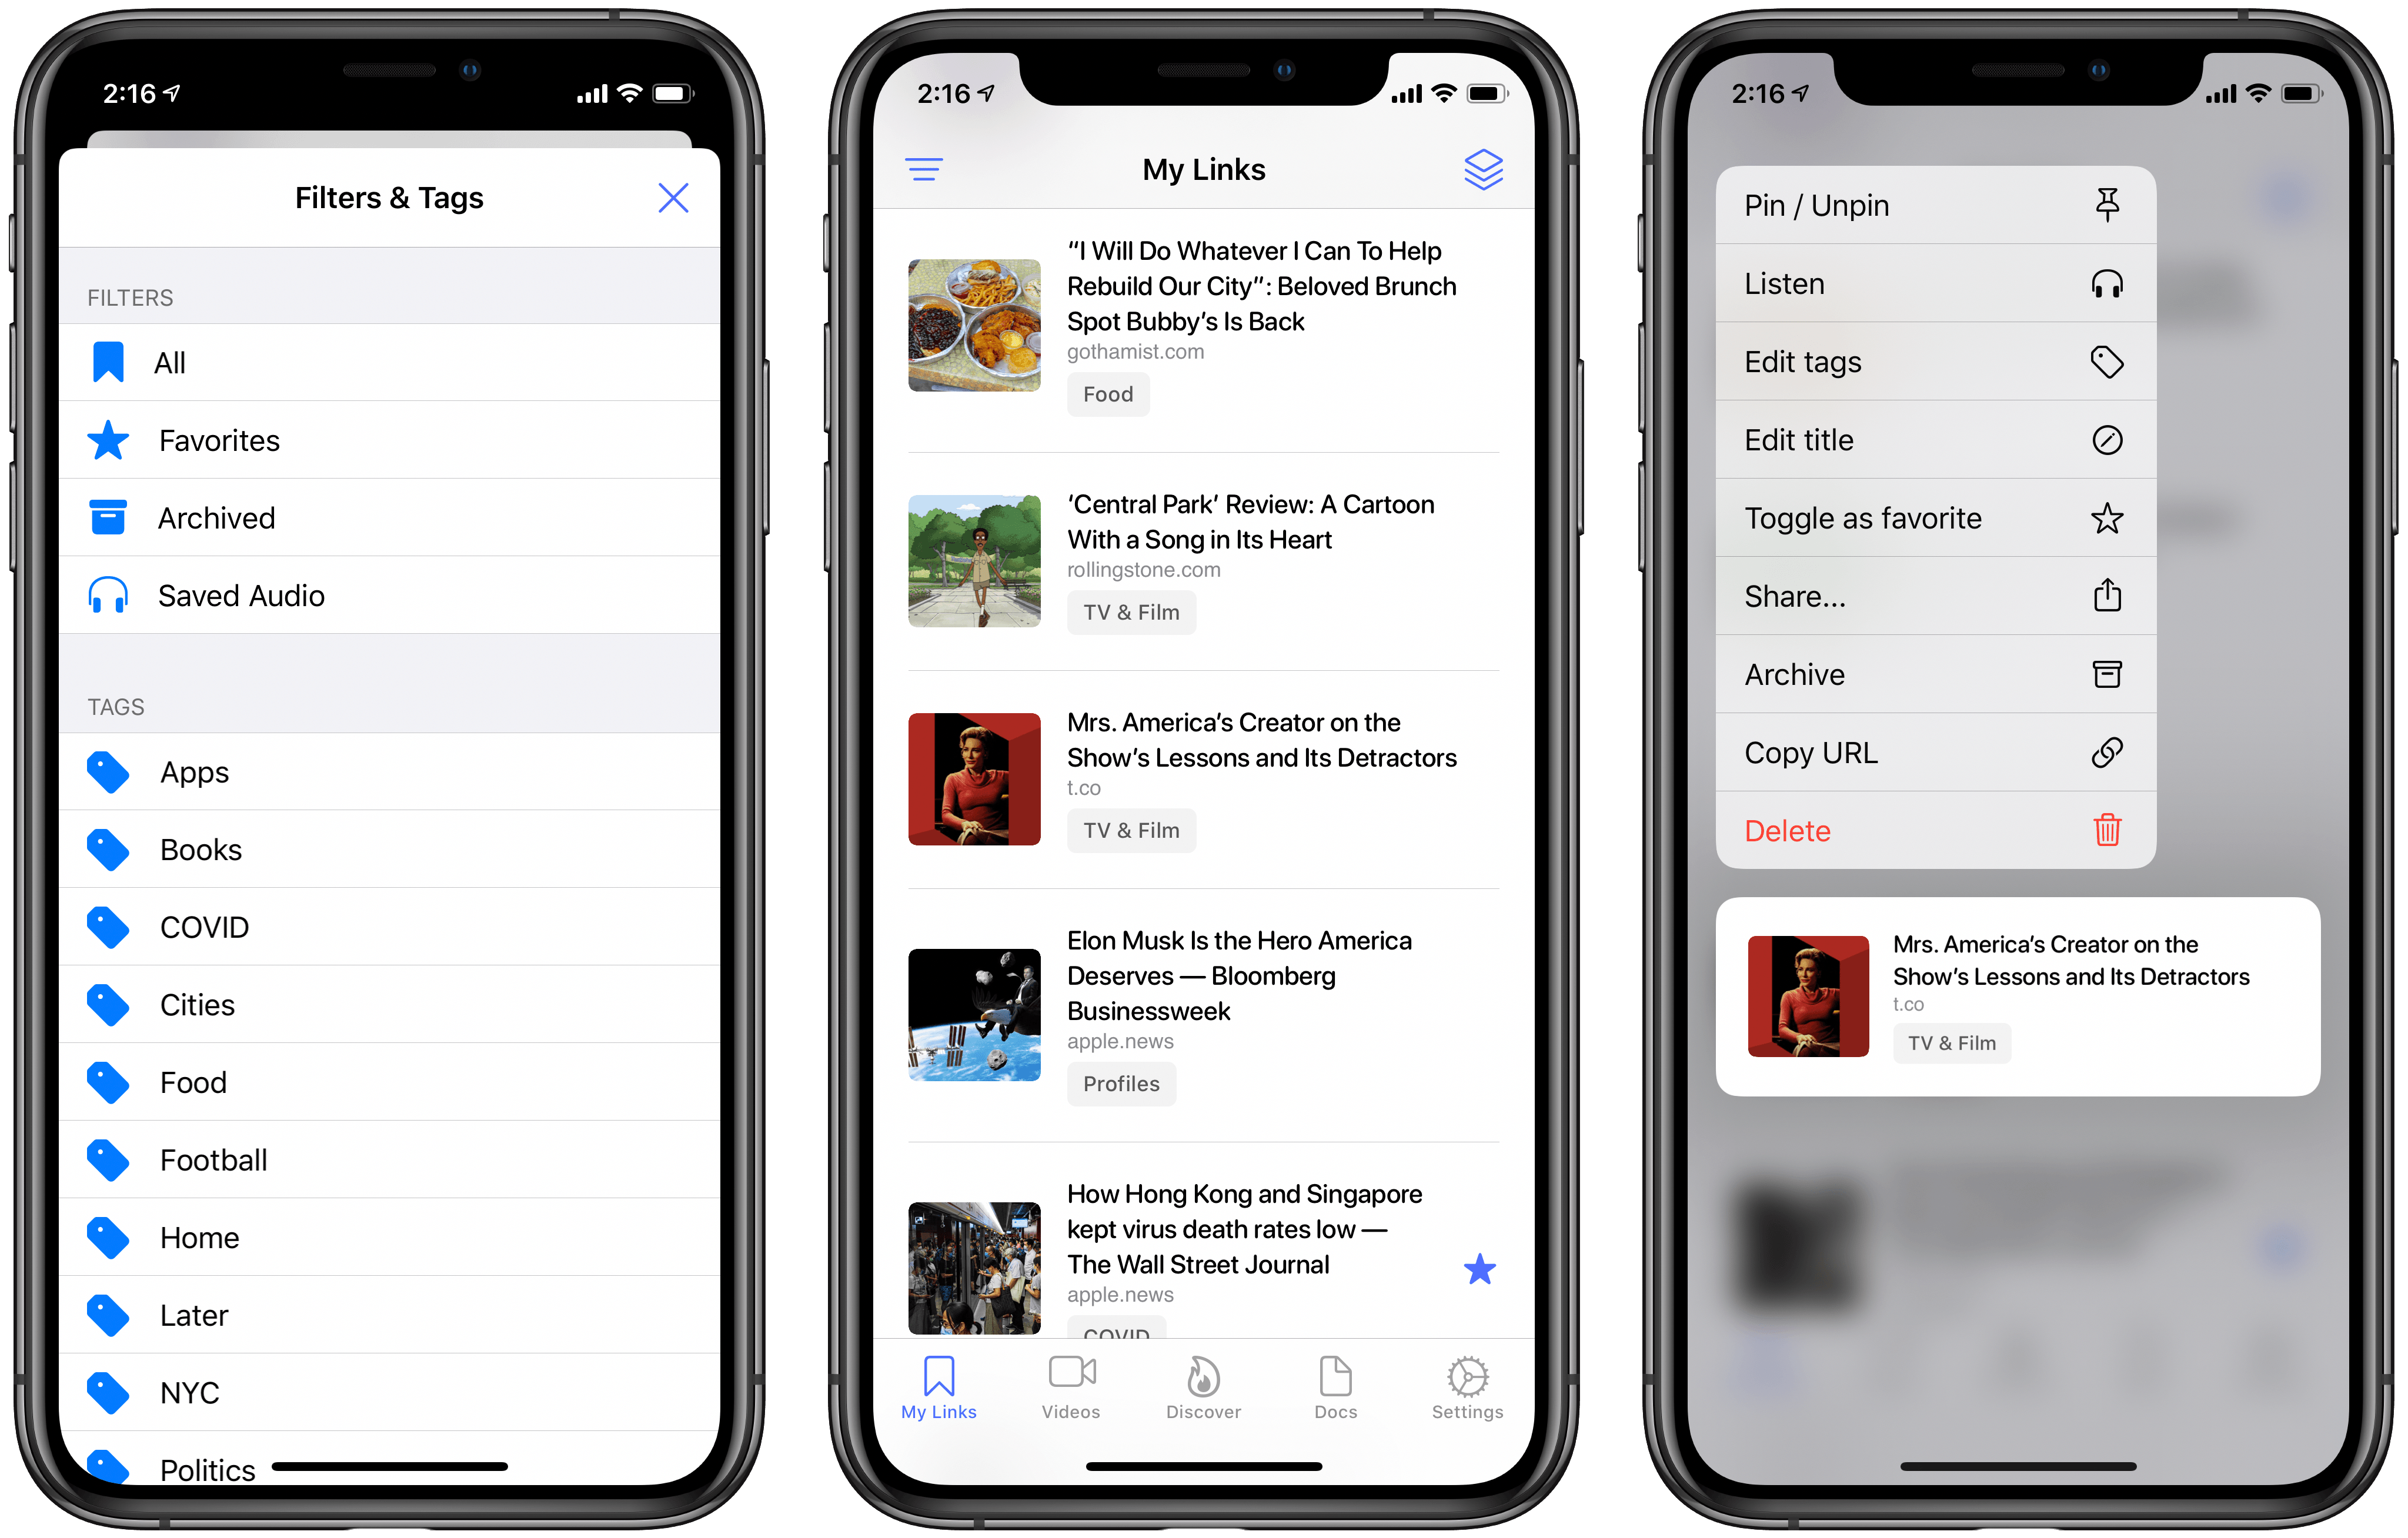 Keep Review: The Read-Later App I've Been Looking For